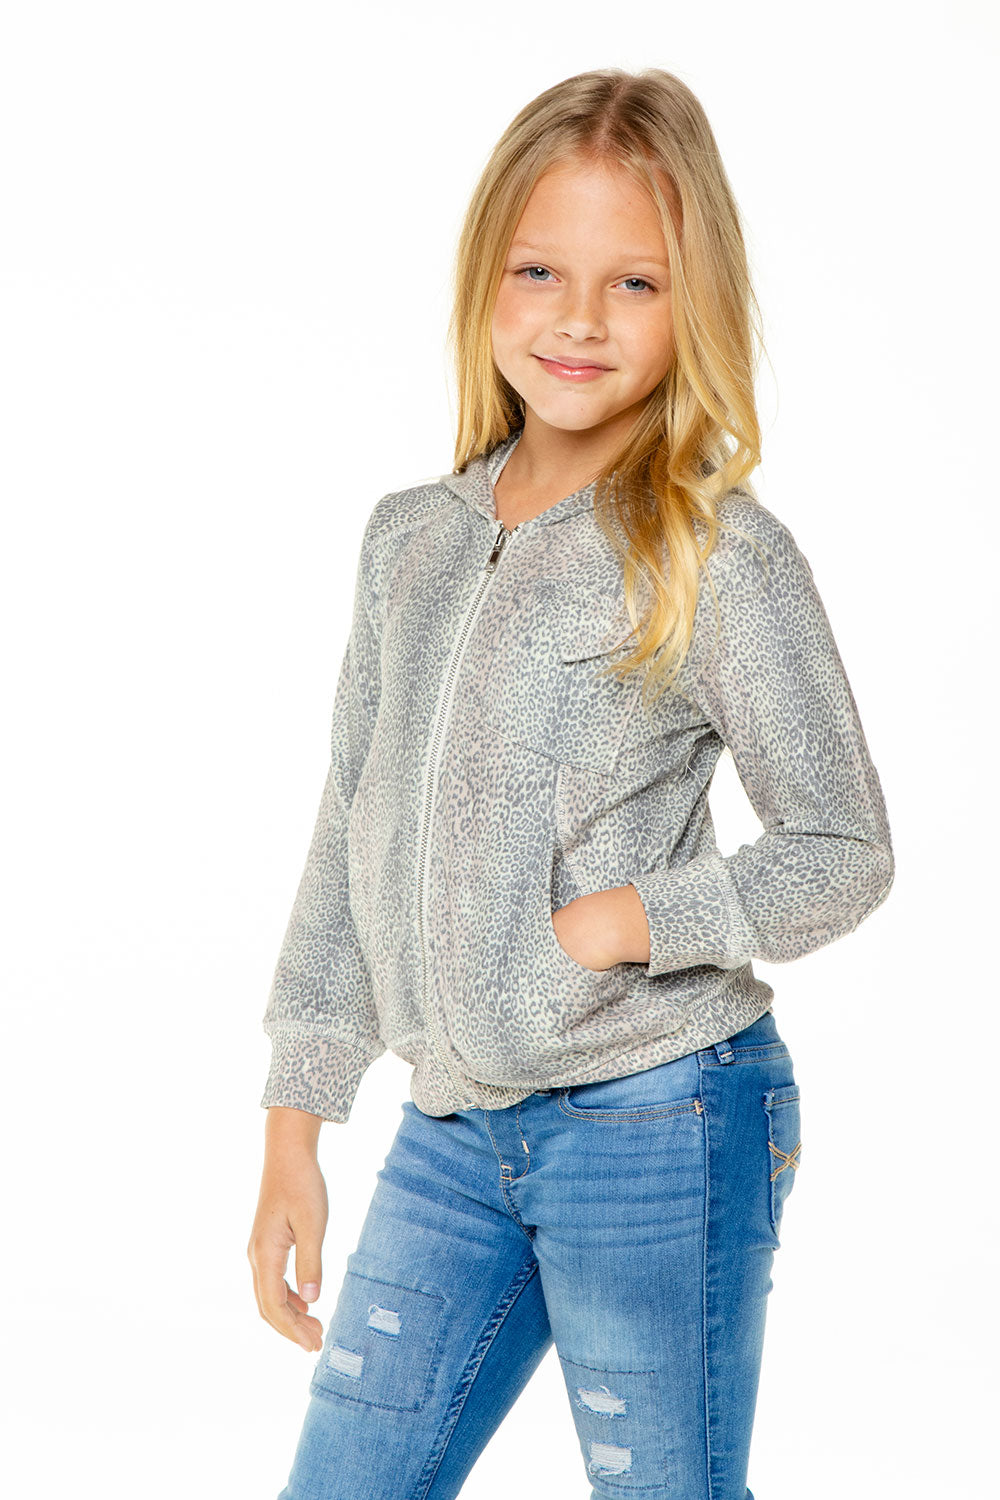 Girls Love Knit Long Sleeve Zip Up Hoodie with Rib GIRLS chaserbrand4.myshopify.com